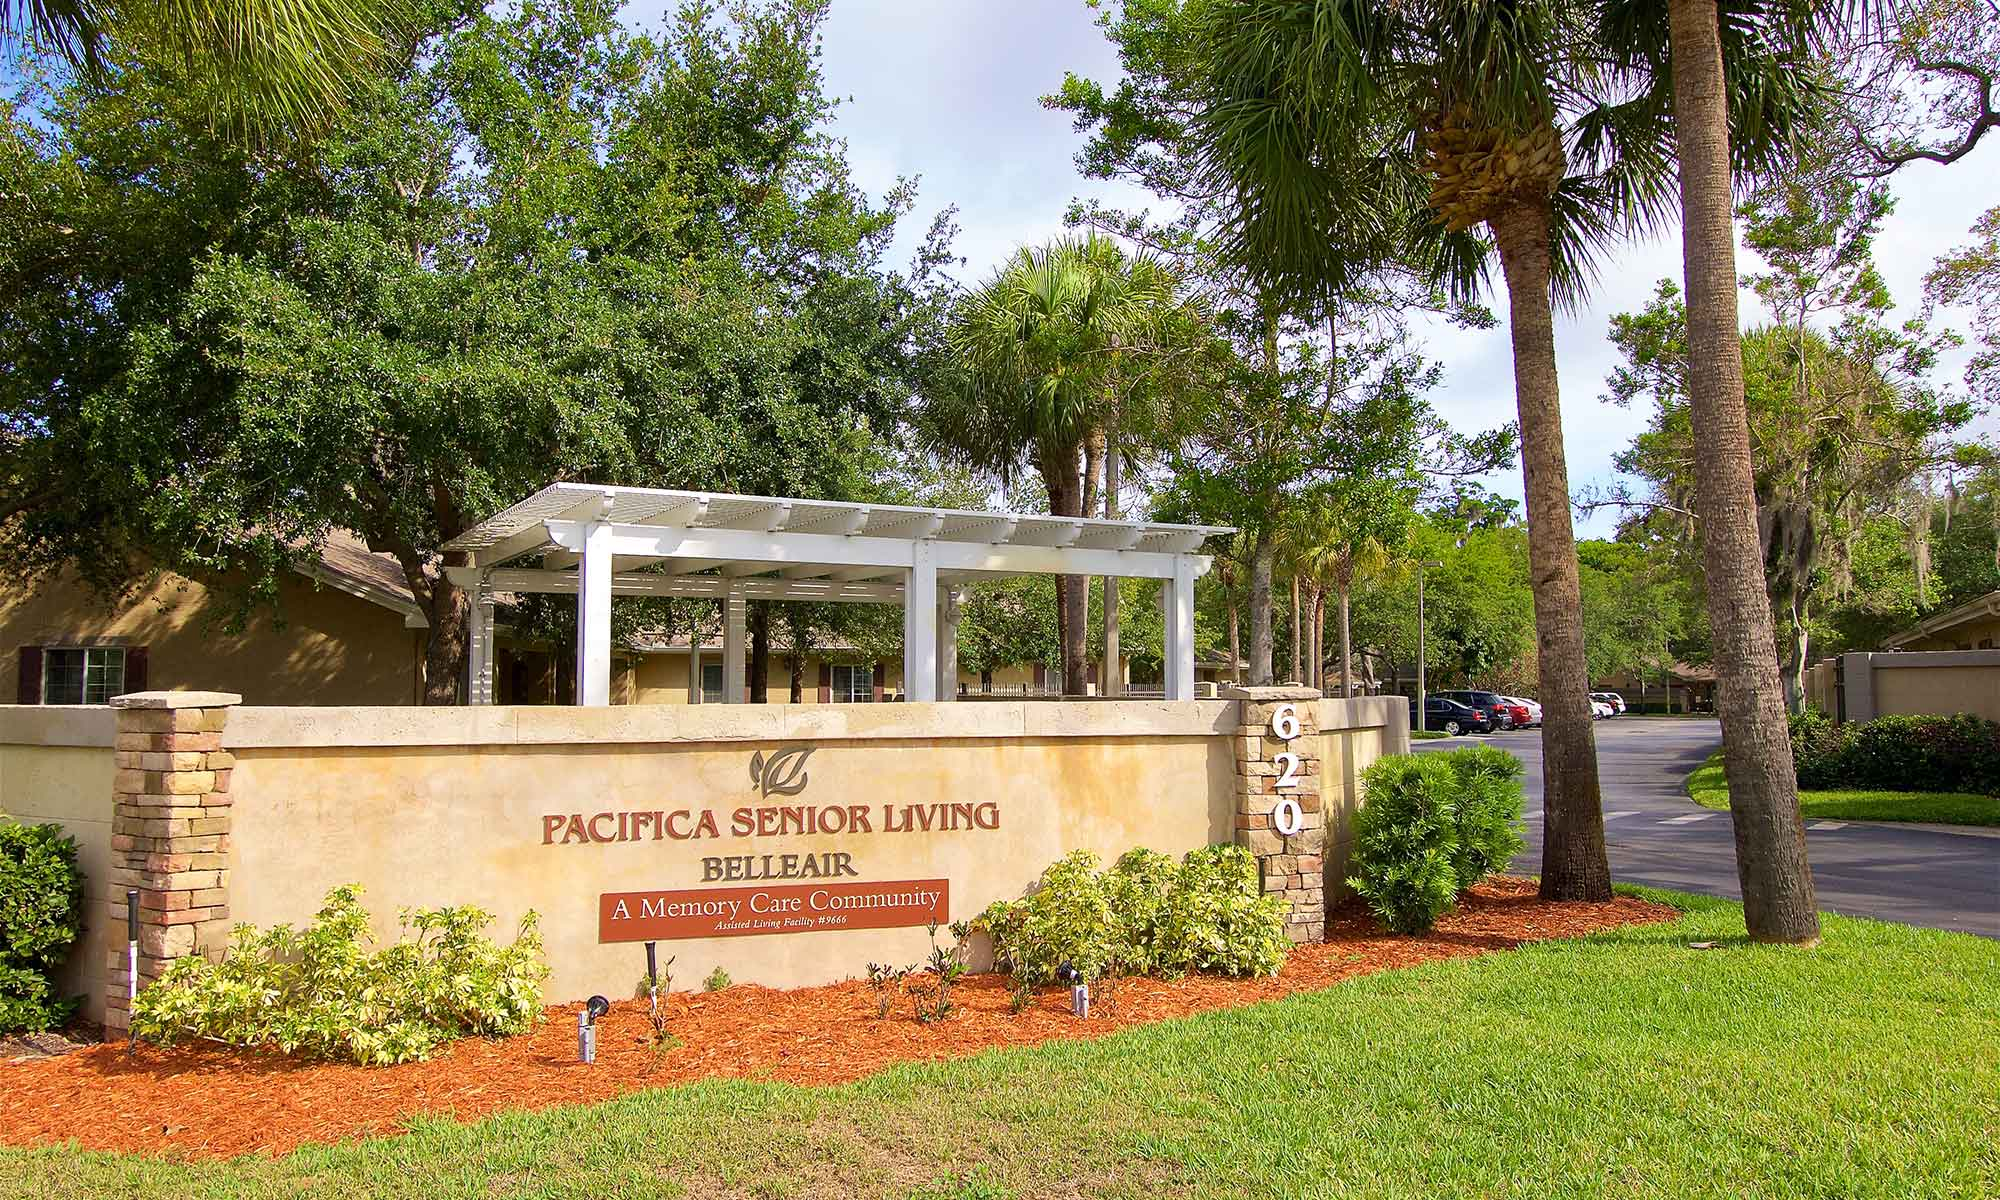 Welcome to the beautiful Pacifica Senior Living Belleair.